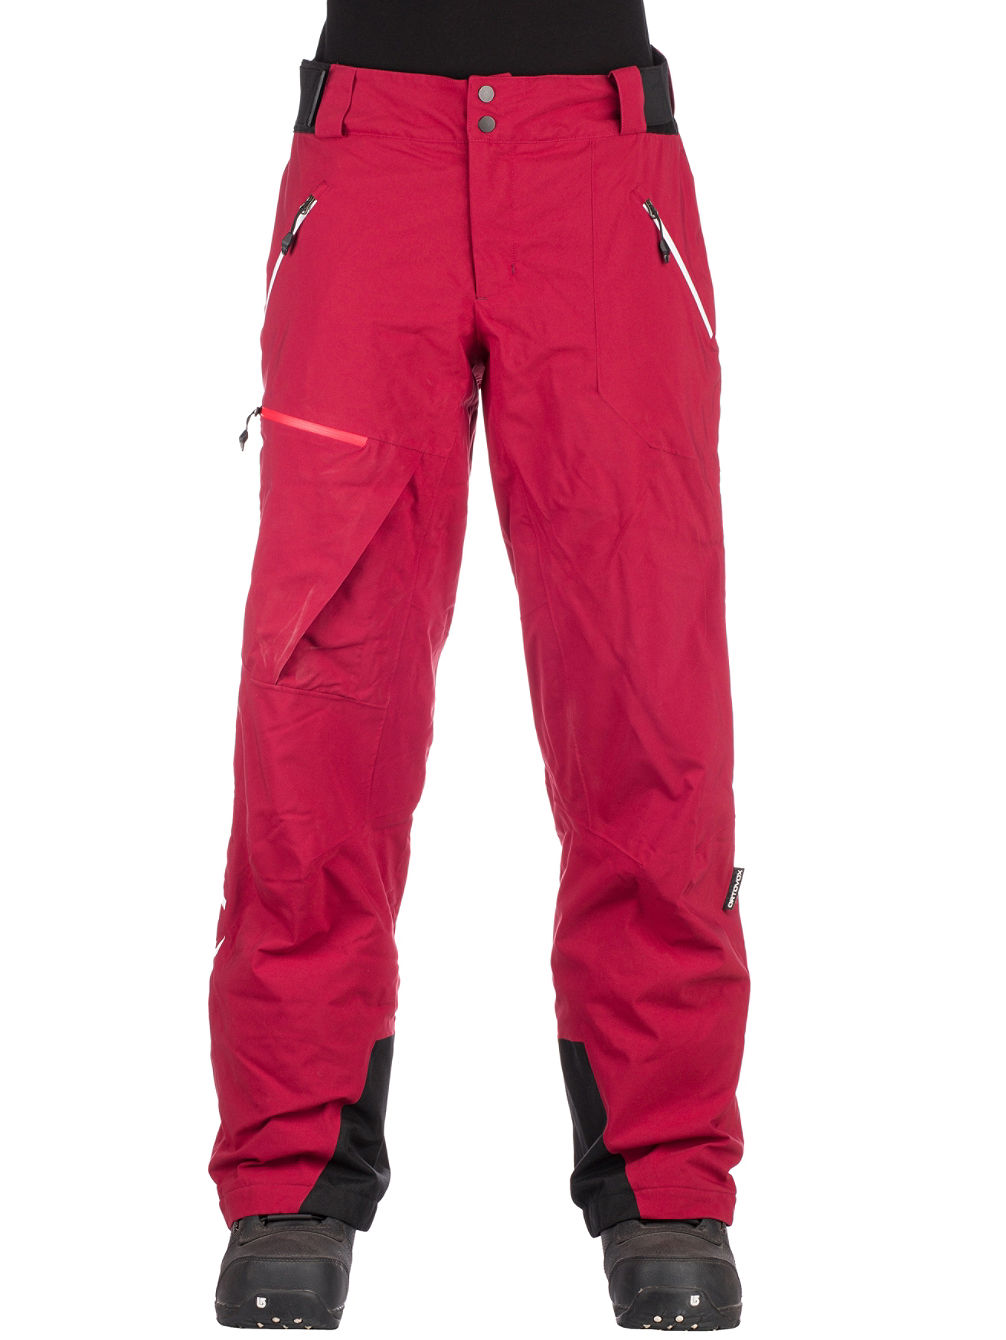 2L Swisswool Andermatt Pantalon